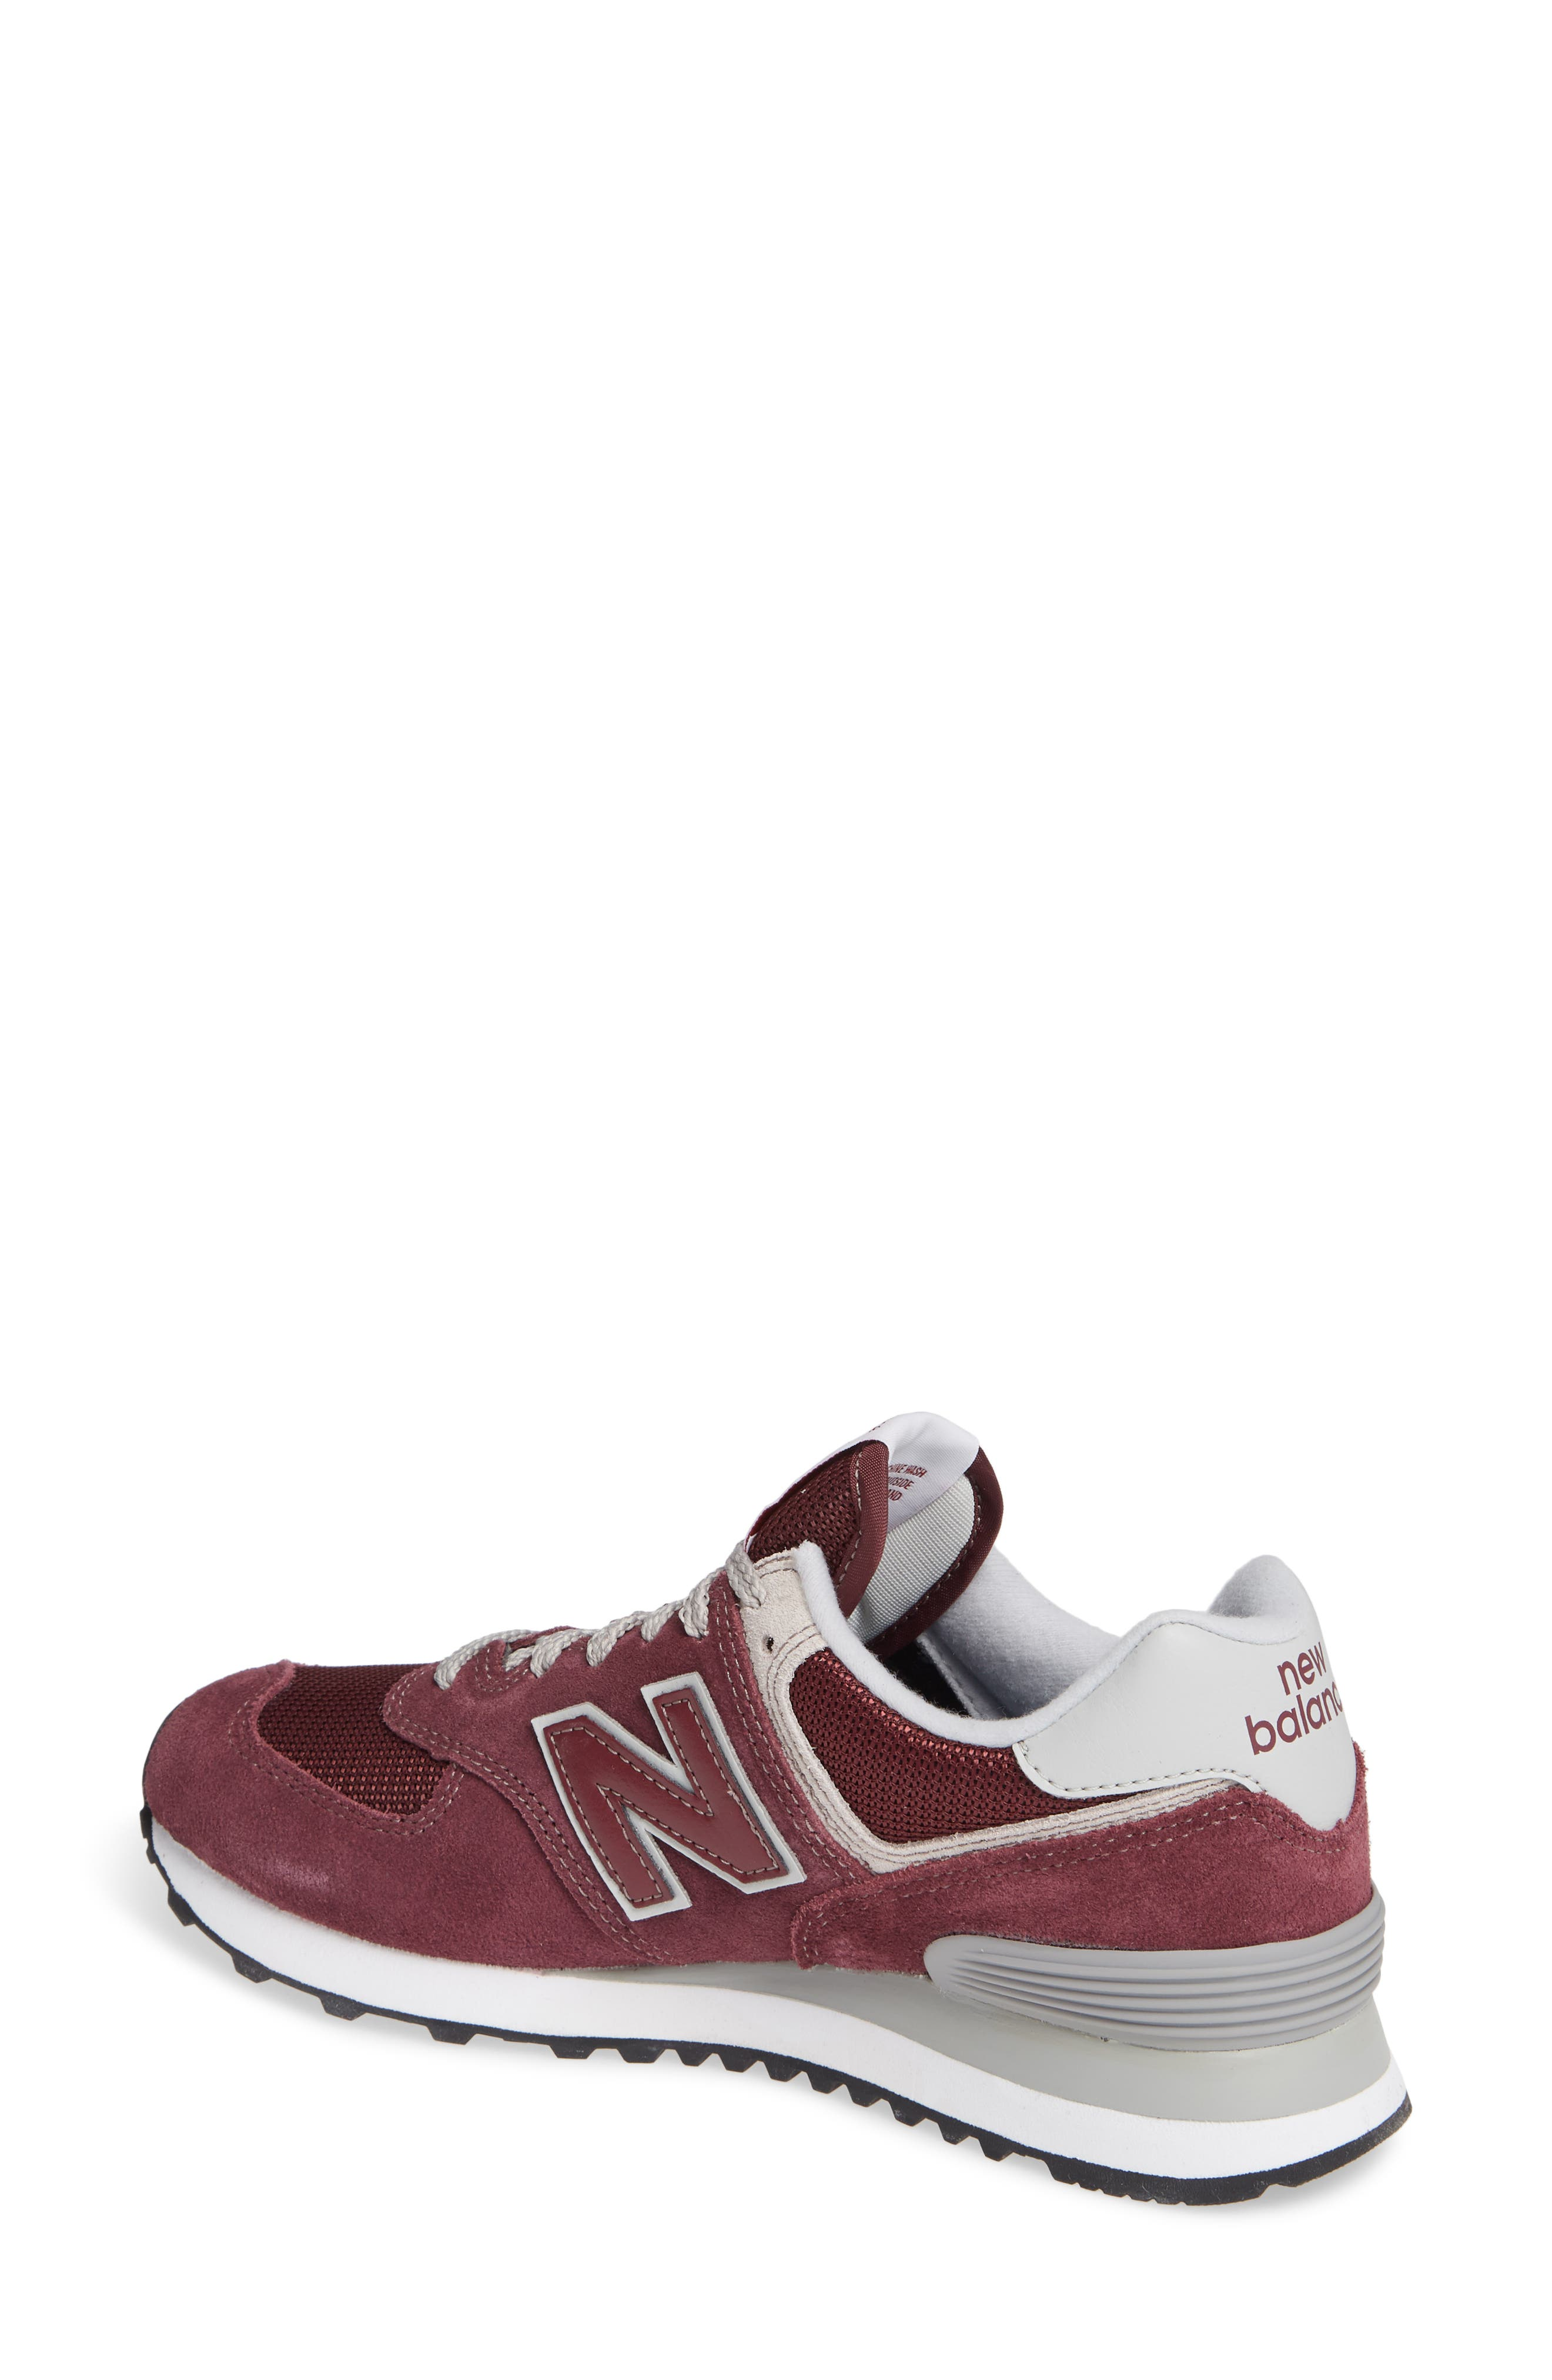 '574' Sneaker,                             Alternate thumbnail 2, color,                             BURGUNDY